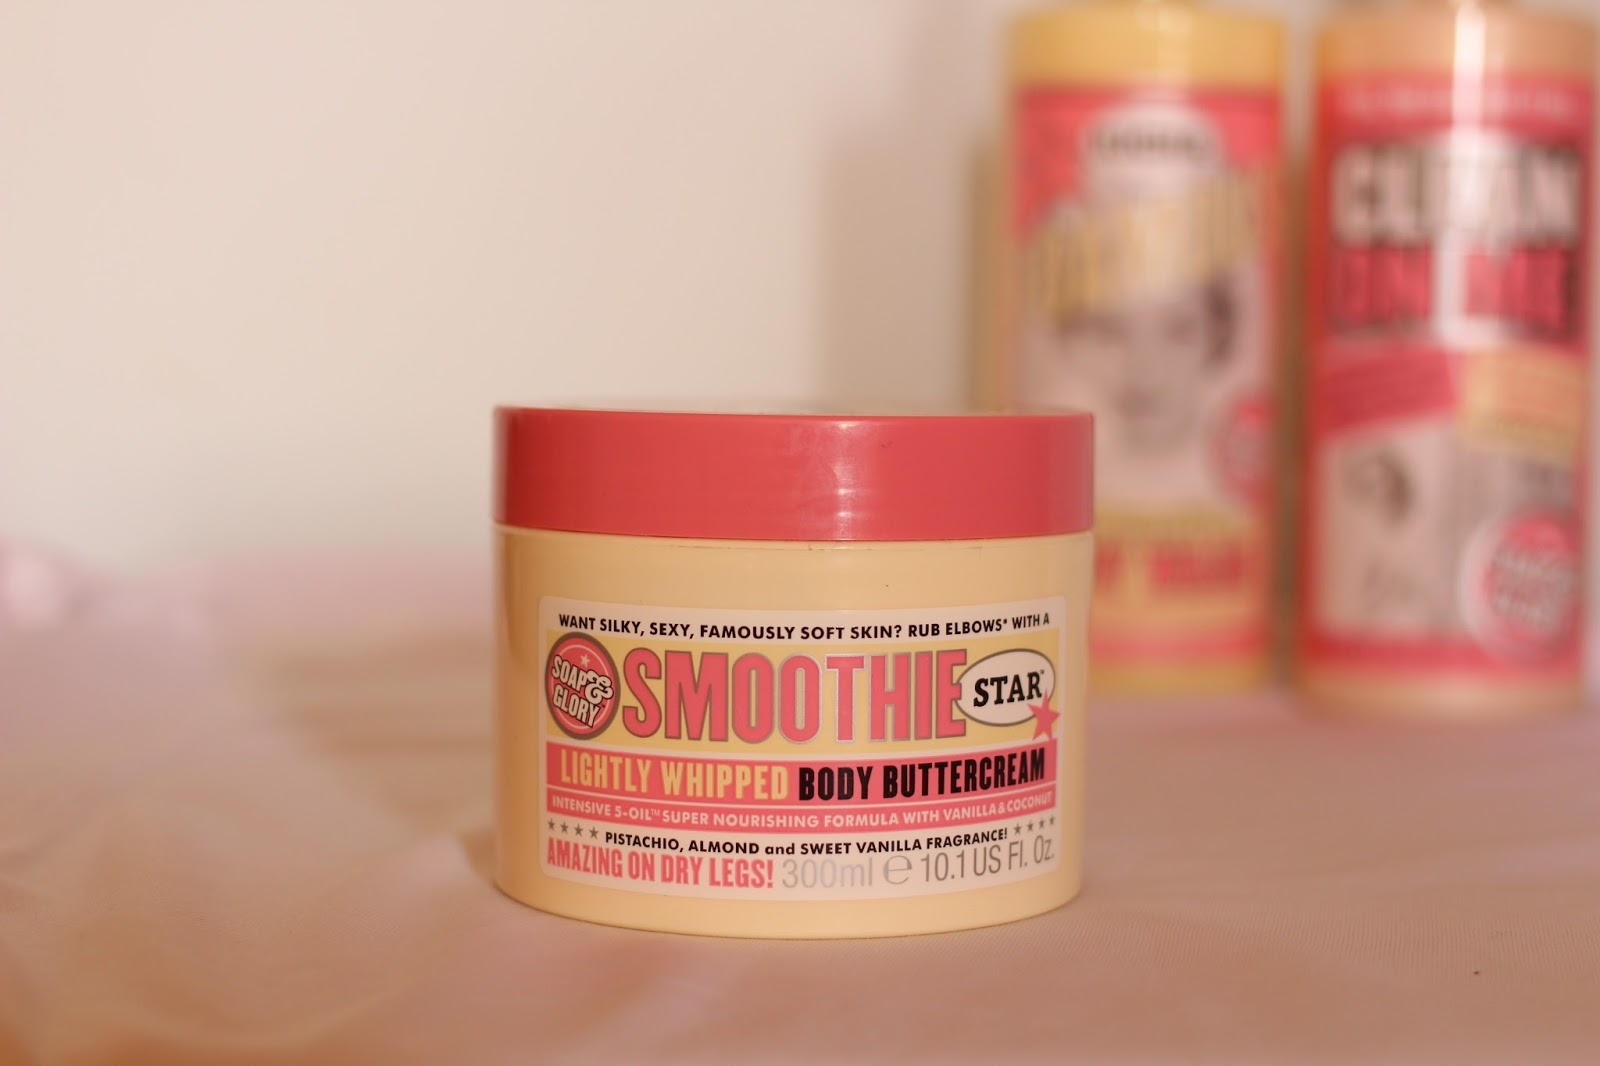 Soap and Glory Smoothie Star Body Buttercream